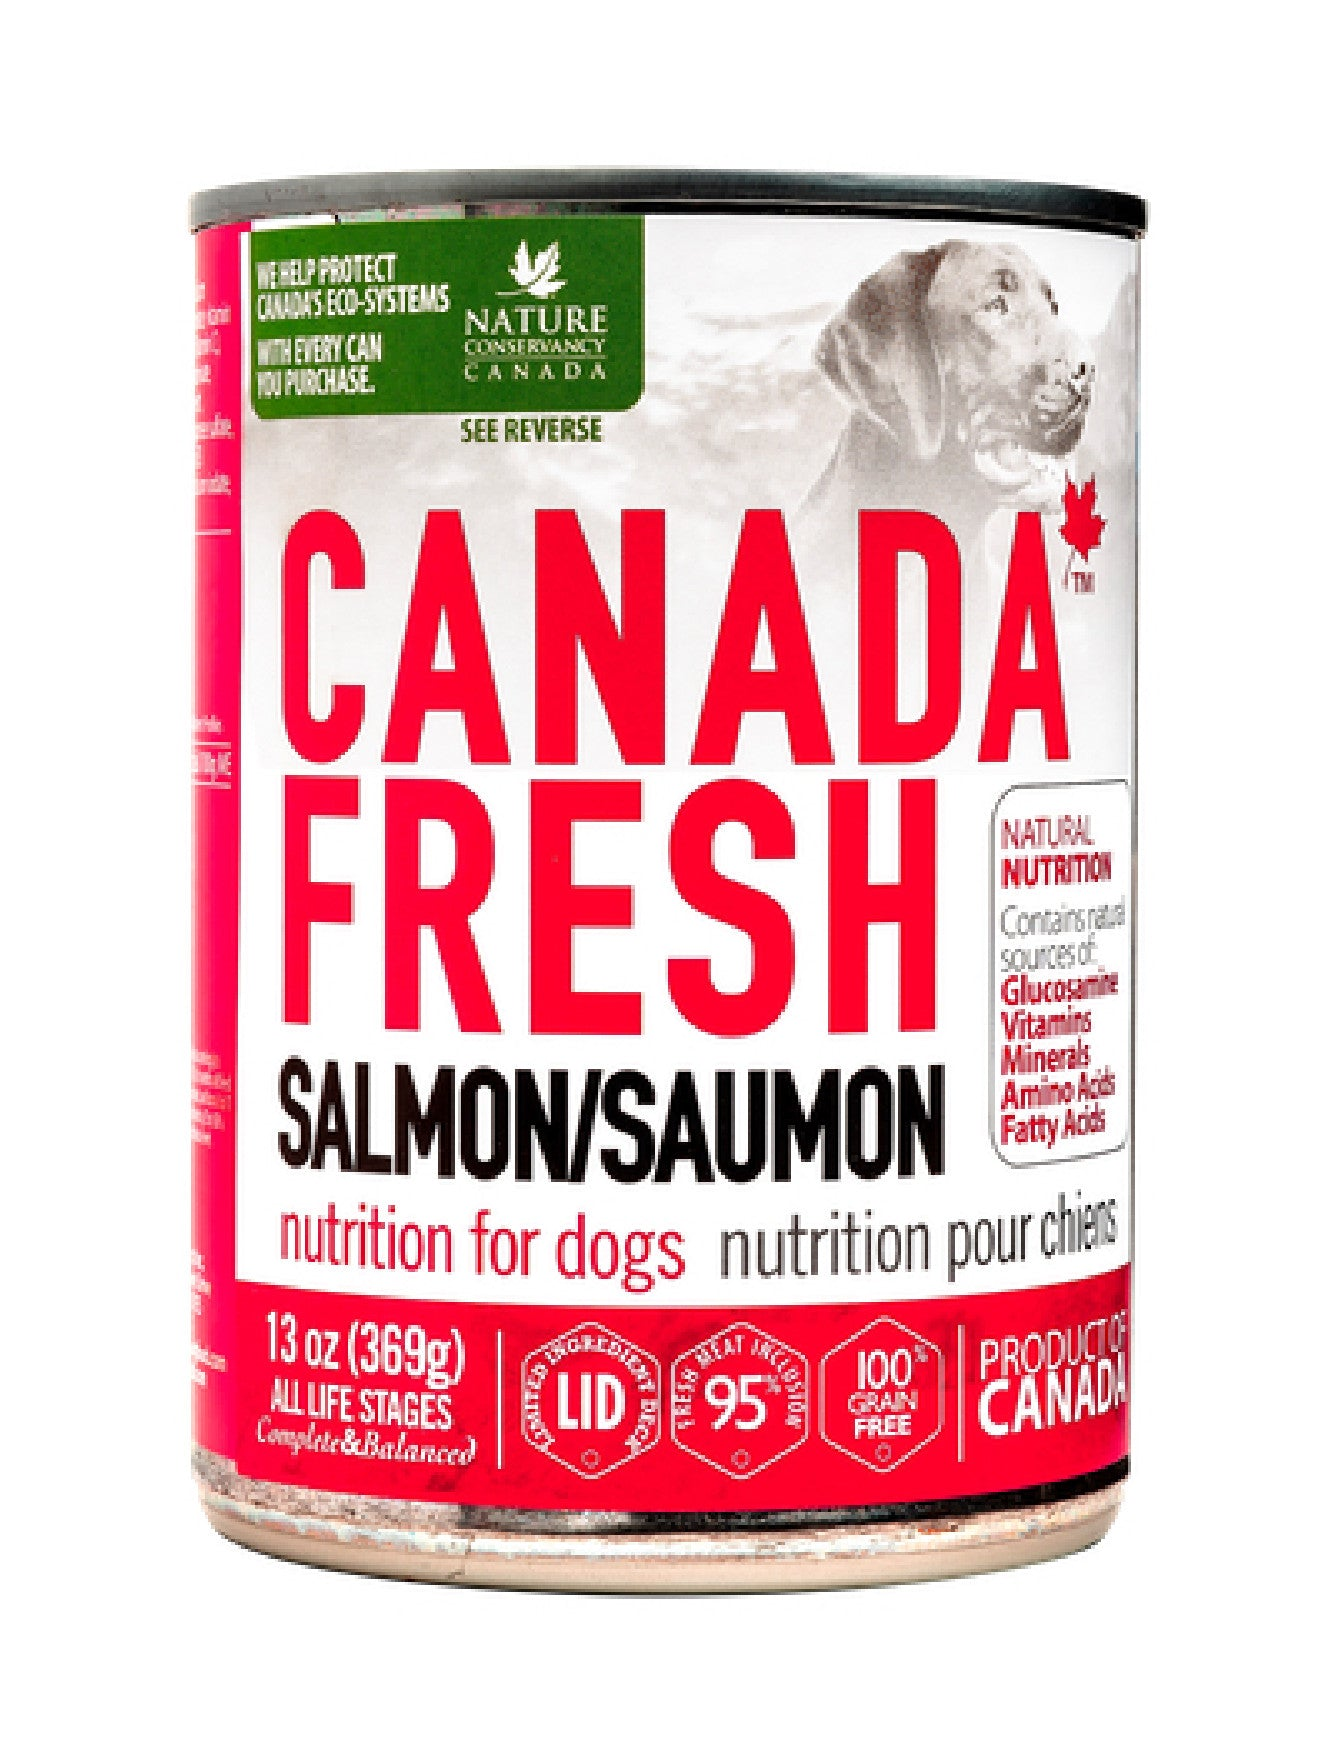 Canada Fresh Salmon Dog Wet Food 369g | Perromart Online Pet Store Singapore